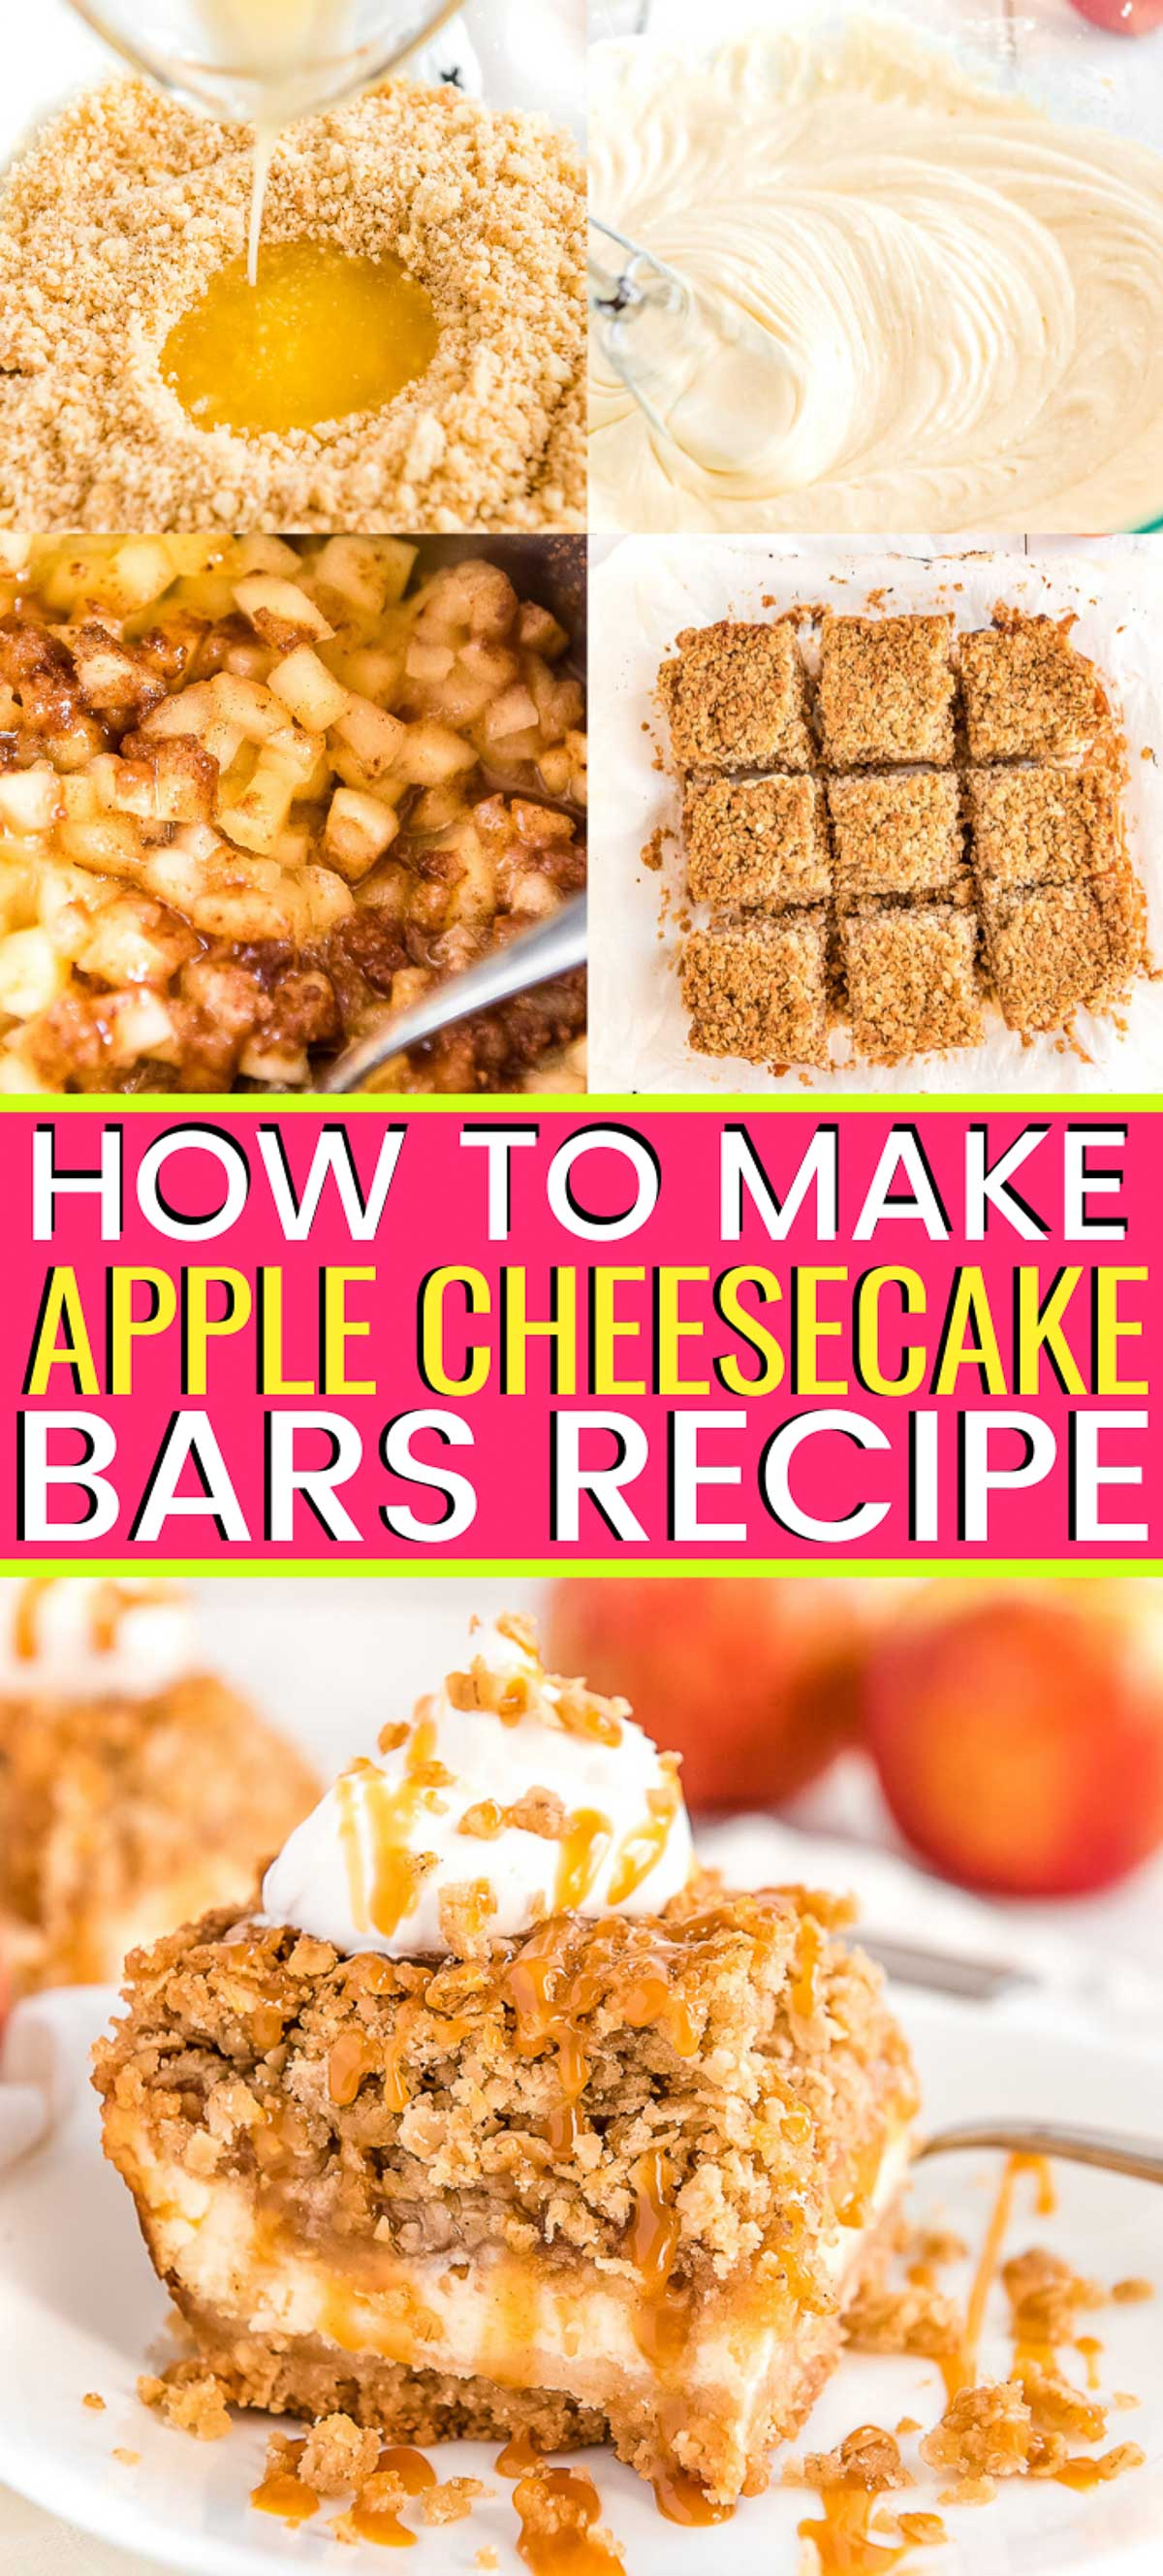 Caramel Apple Cheesecake Bars are made with a shortbread crust, a creamy cheesecake layer, cinnamon baked apples, and an oatmeal crumble topping! via @sugarandsoulco